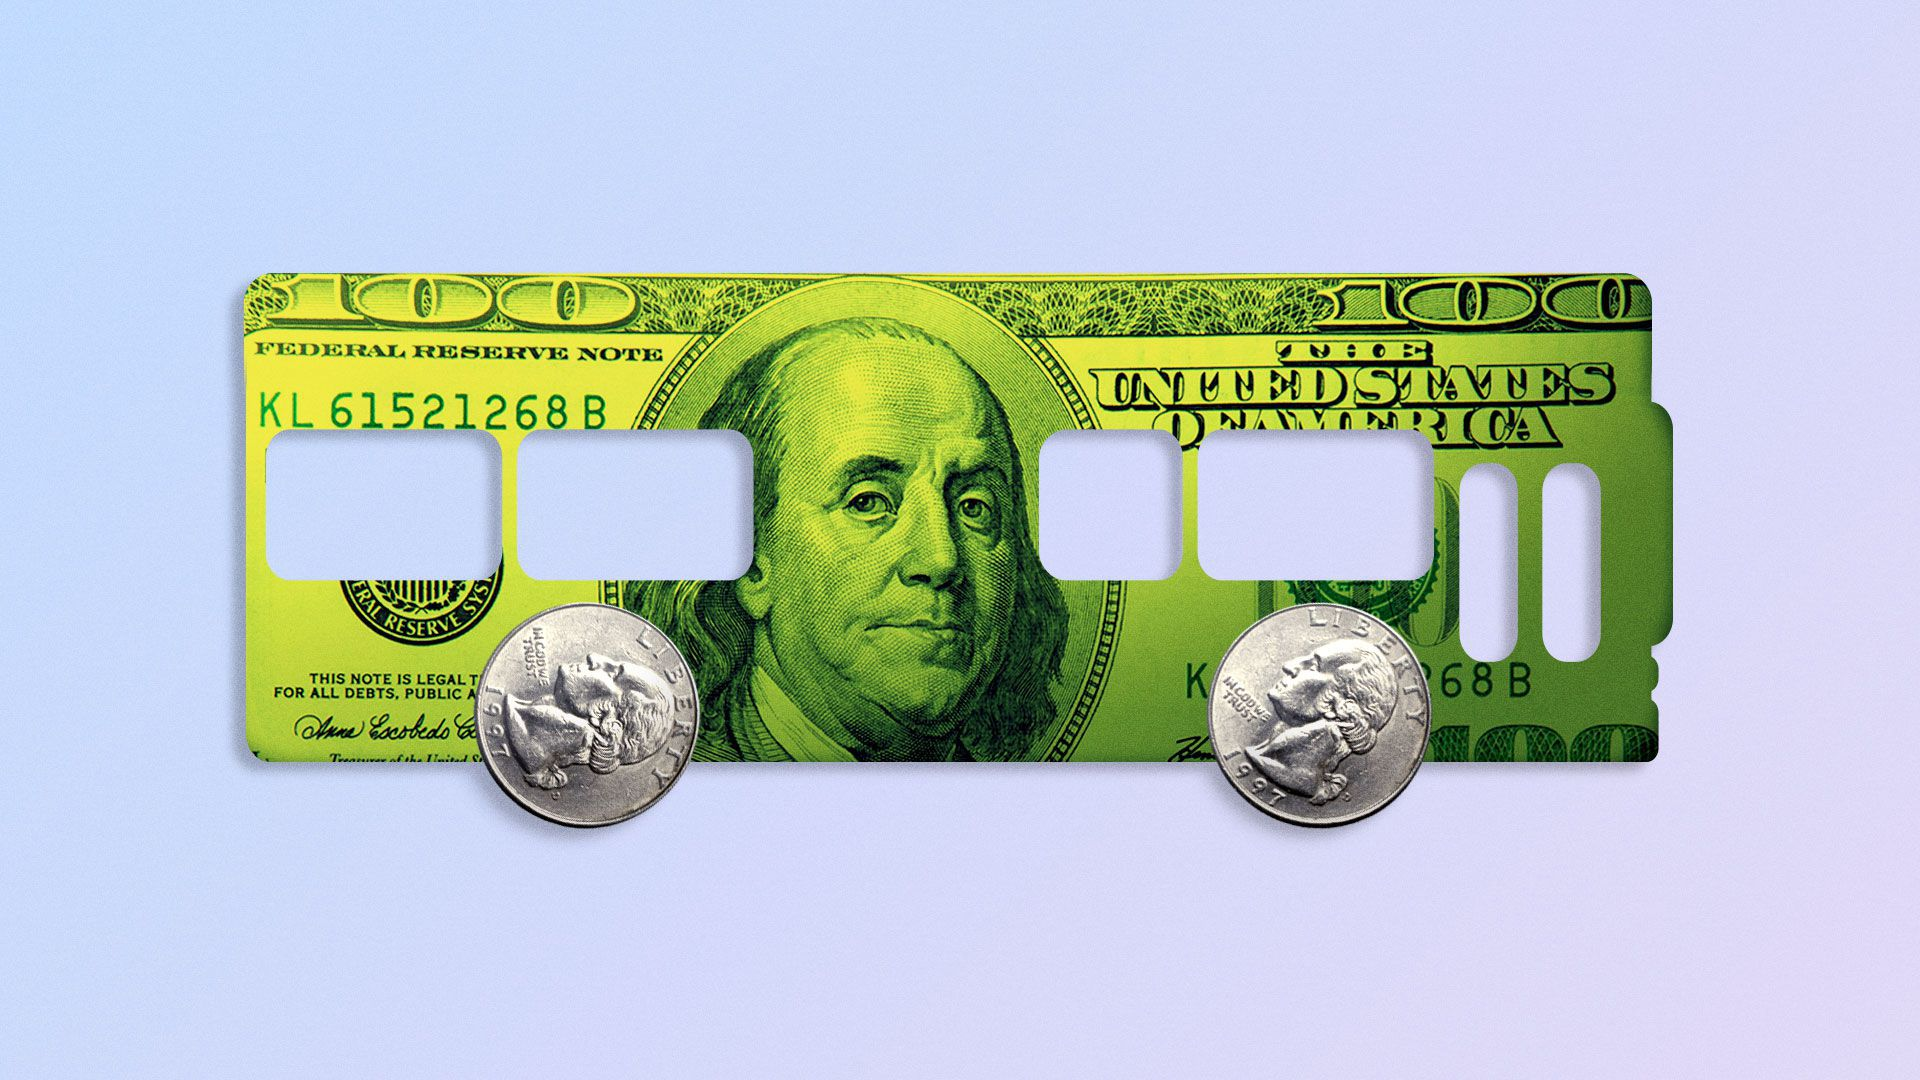 Illustration of a public bus made of a $100 bill and quarters